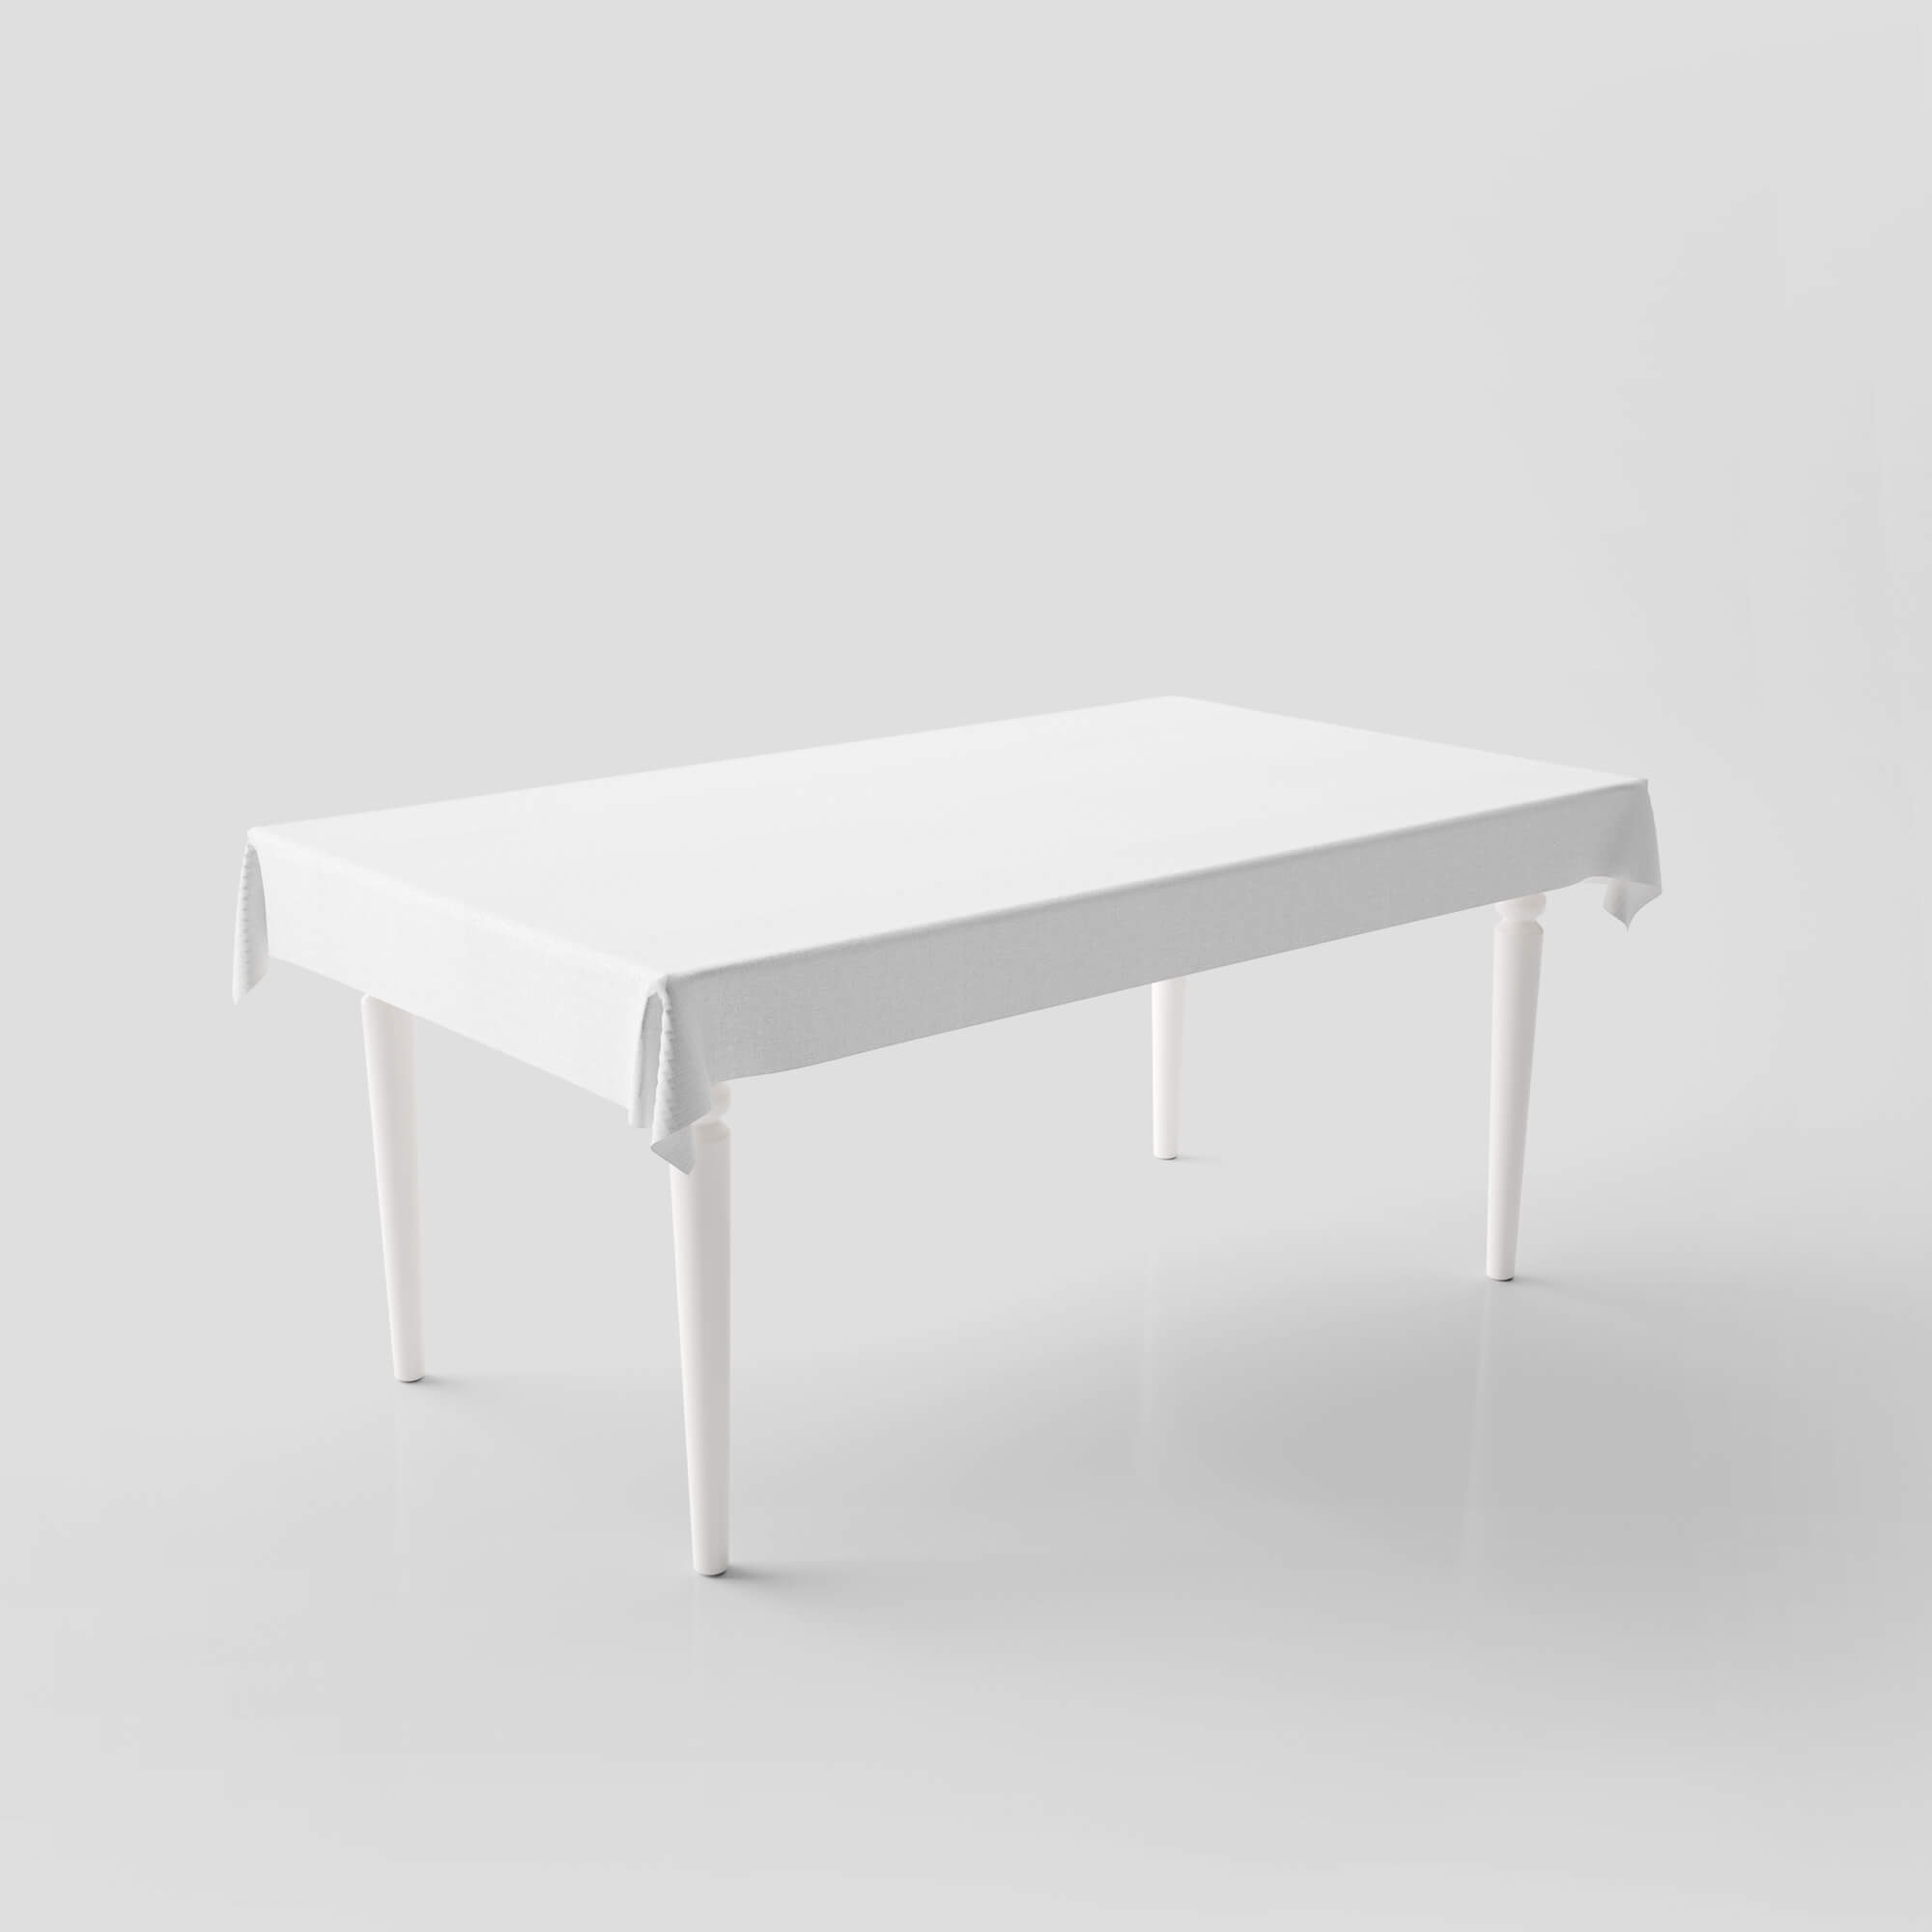 Blank Free Table Cover Mockup PSD Template